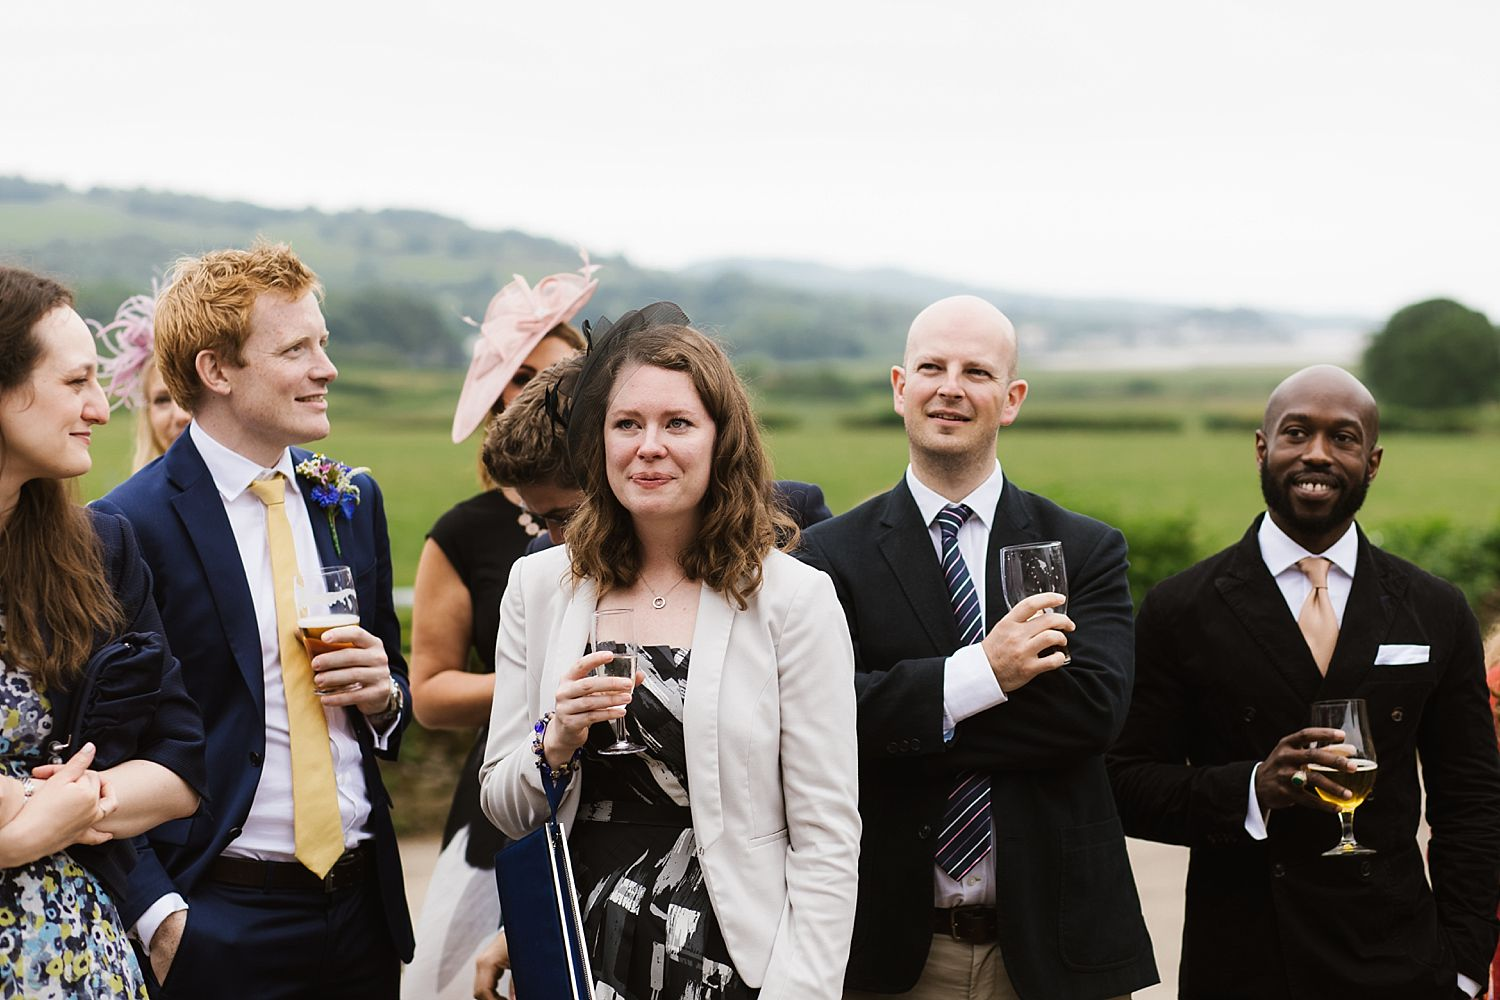 Guests with champagne glasses in hand at South Lakes wedding venue, Park House Barn